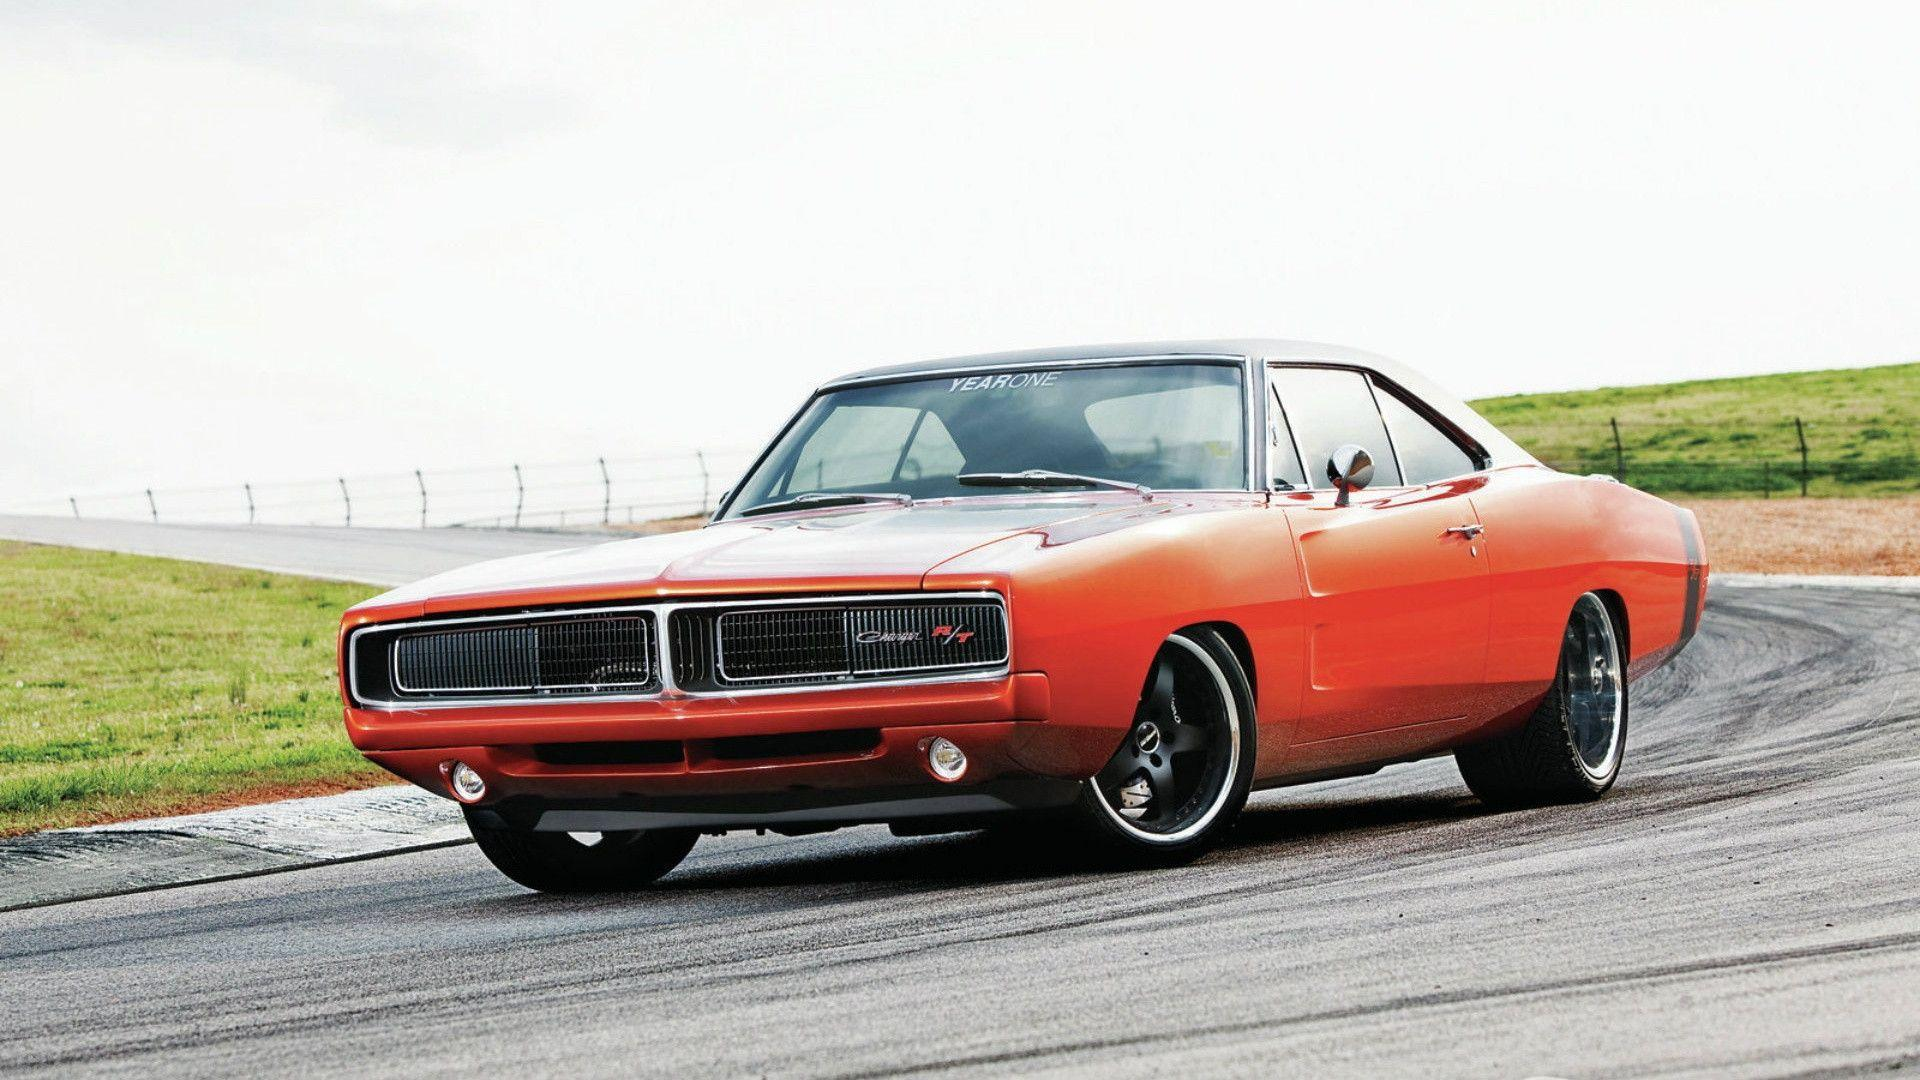 1920x1080 1969 dodge charger mopar Wallpaper